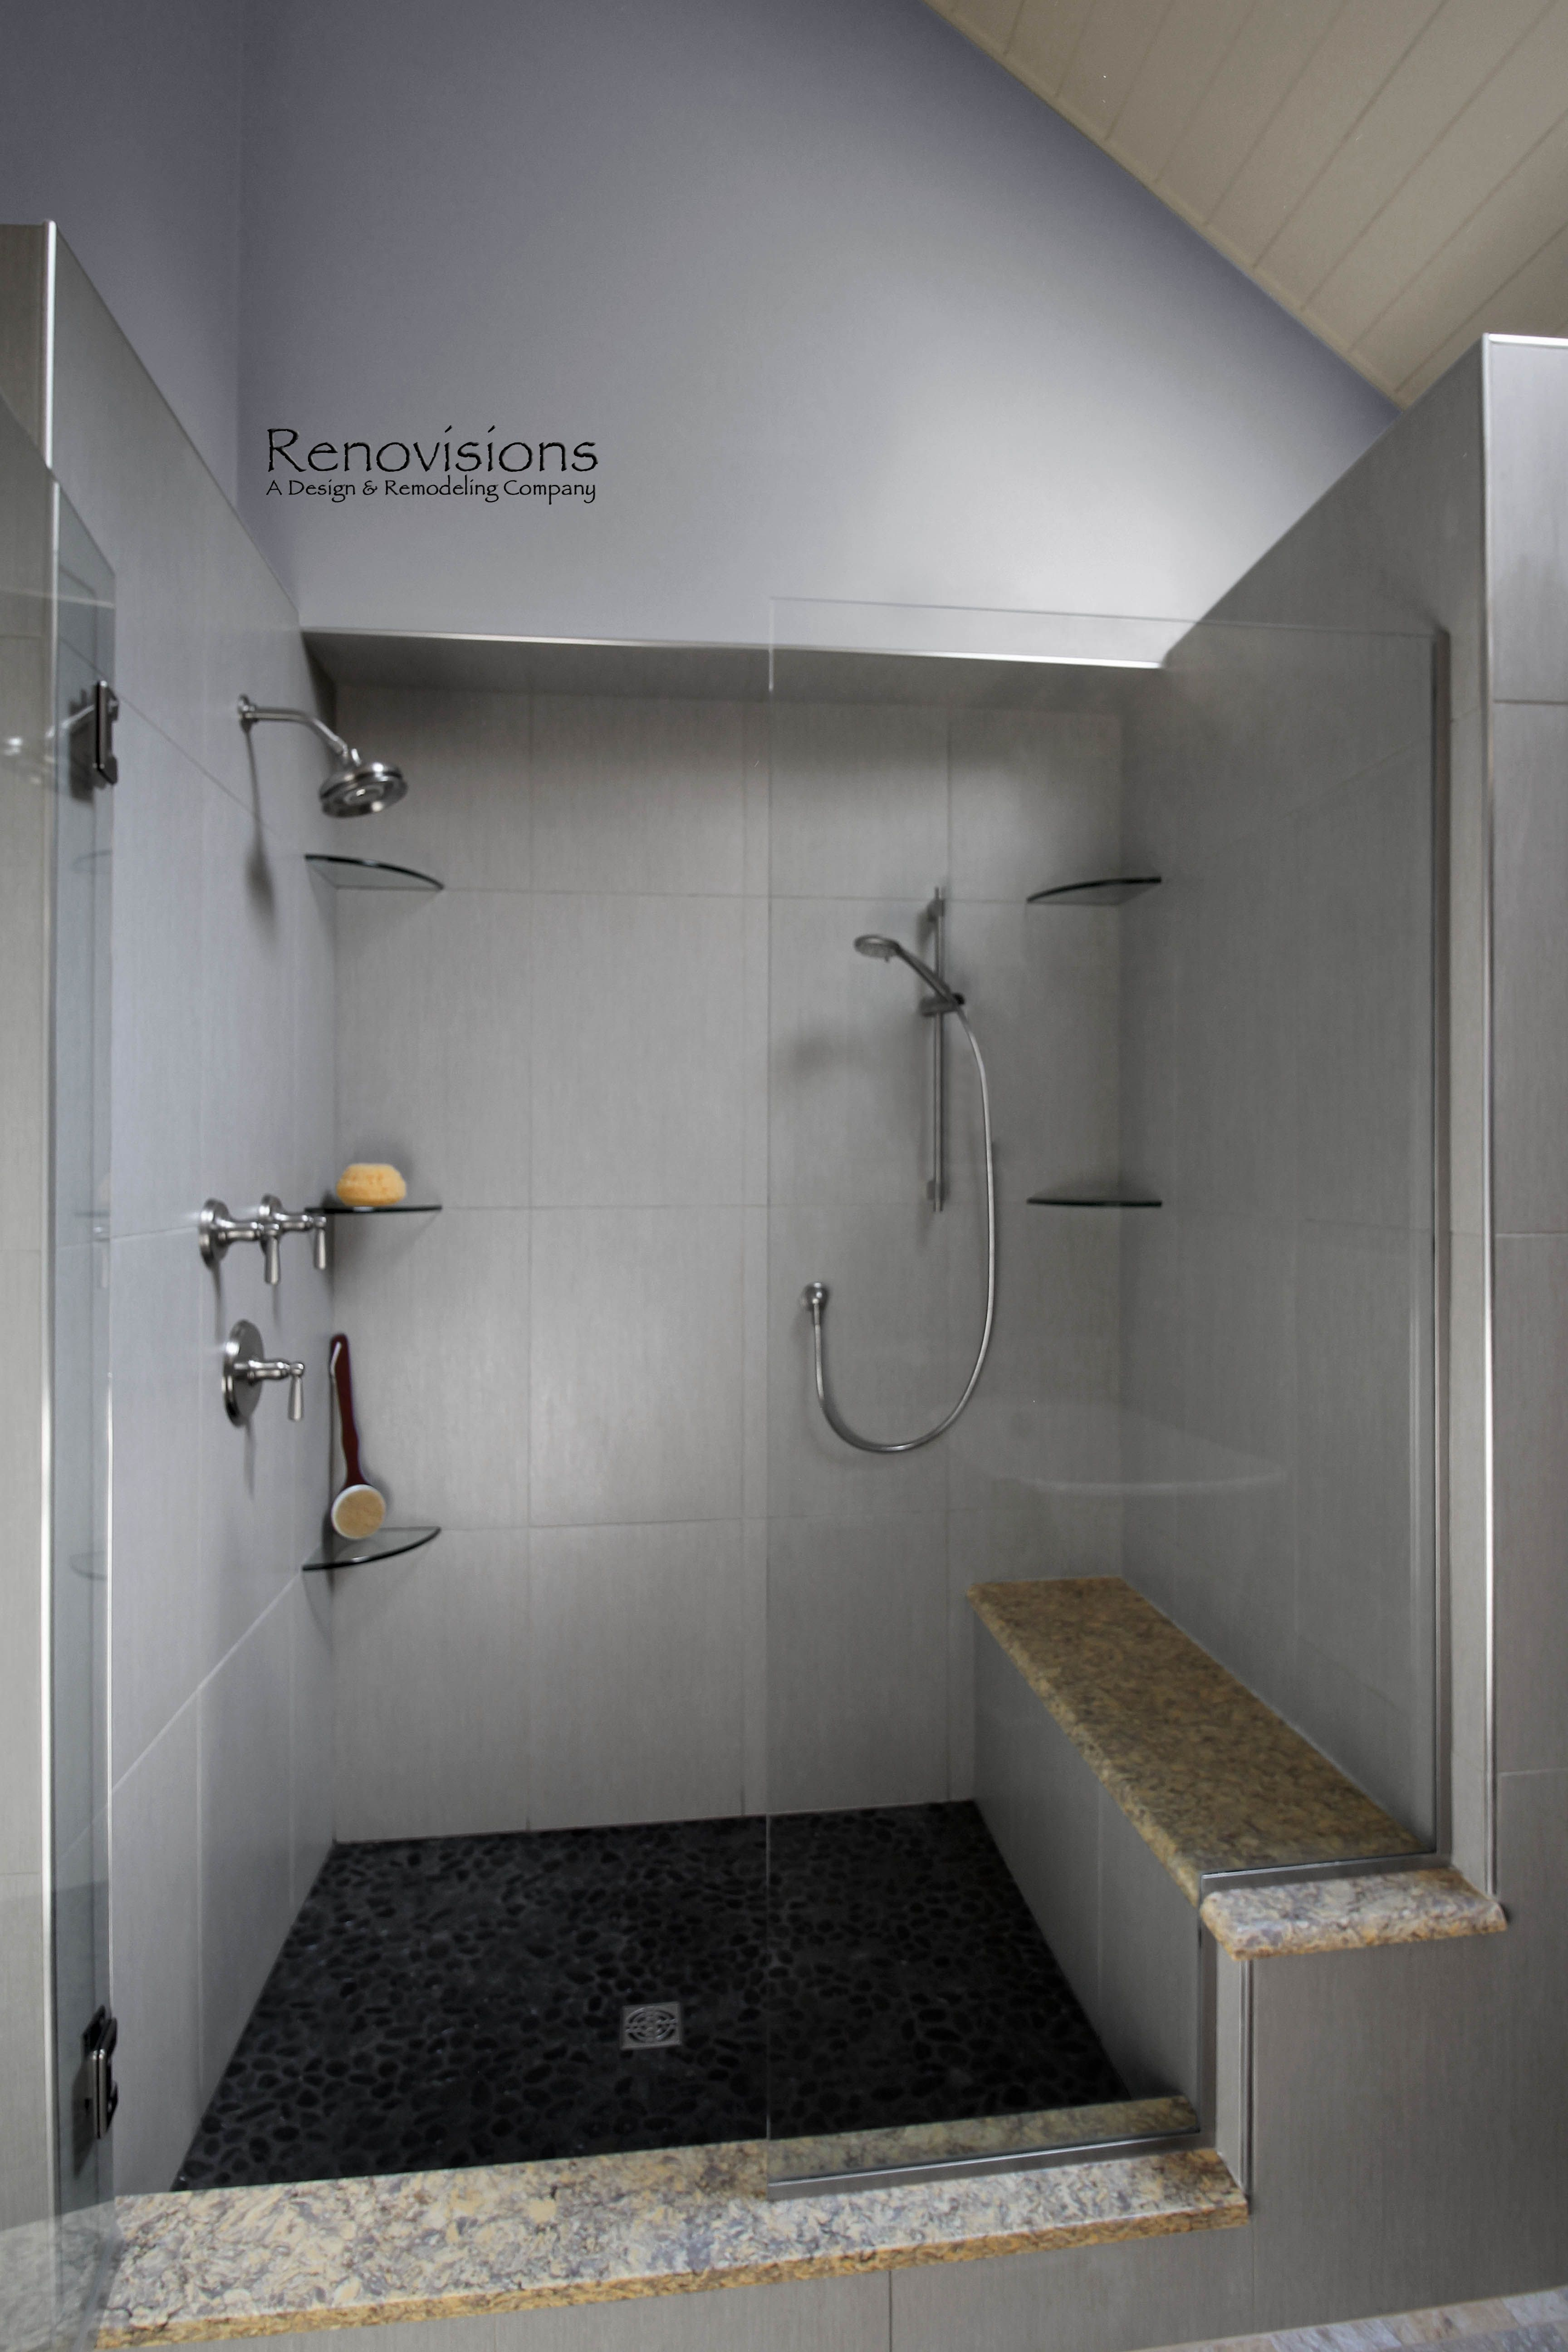 A recently pleted master bathroom remodel by Renovisions Master